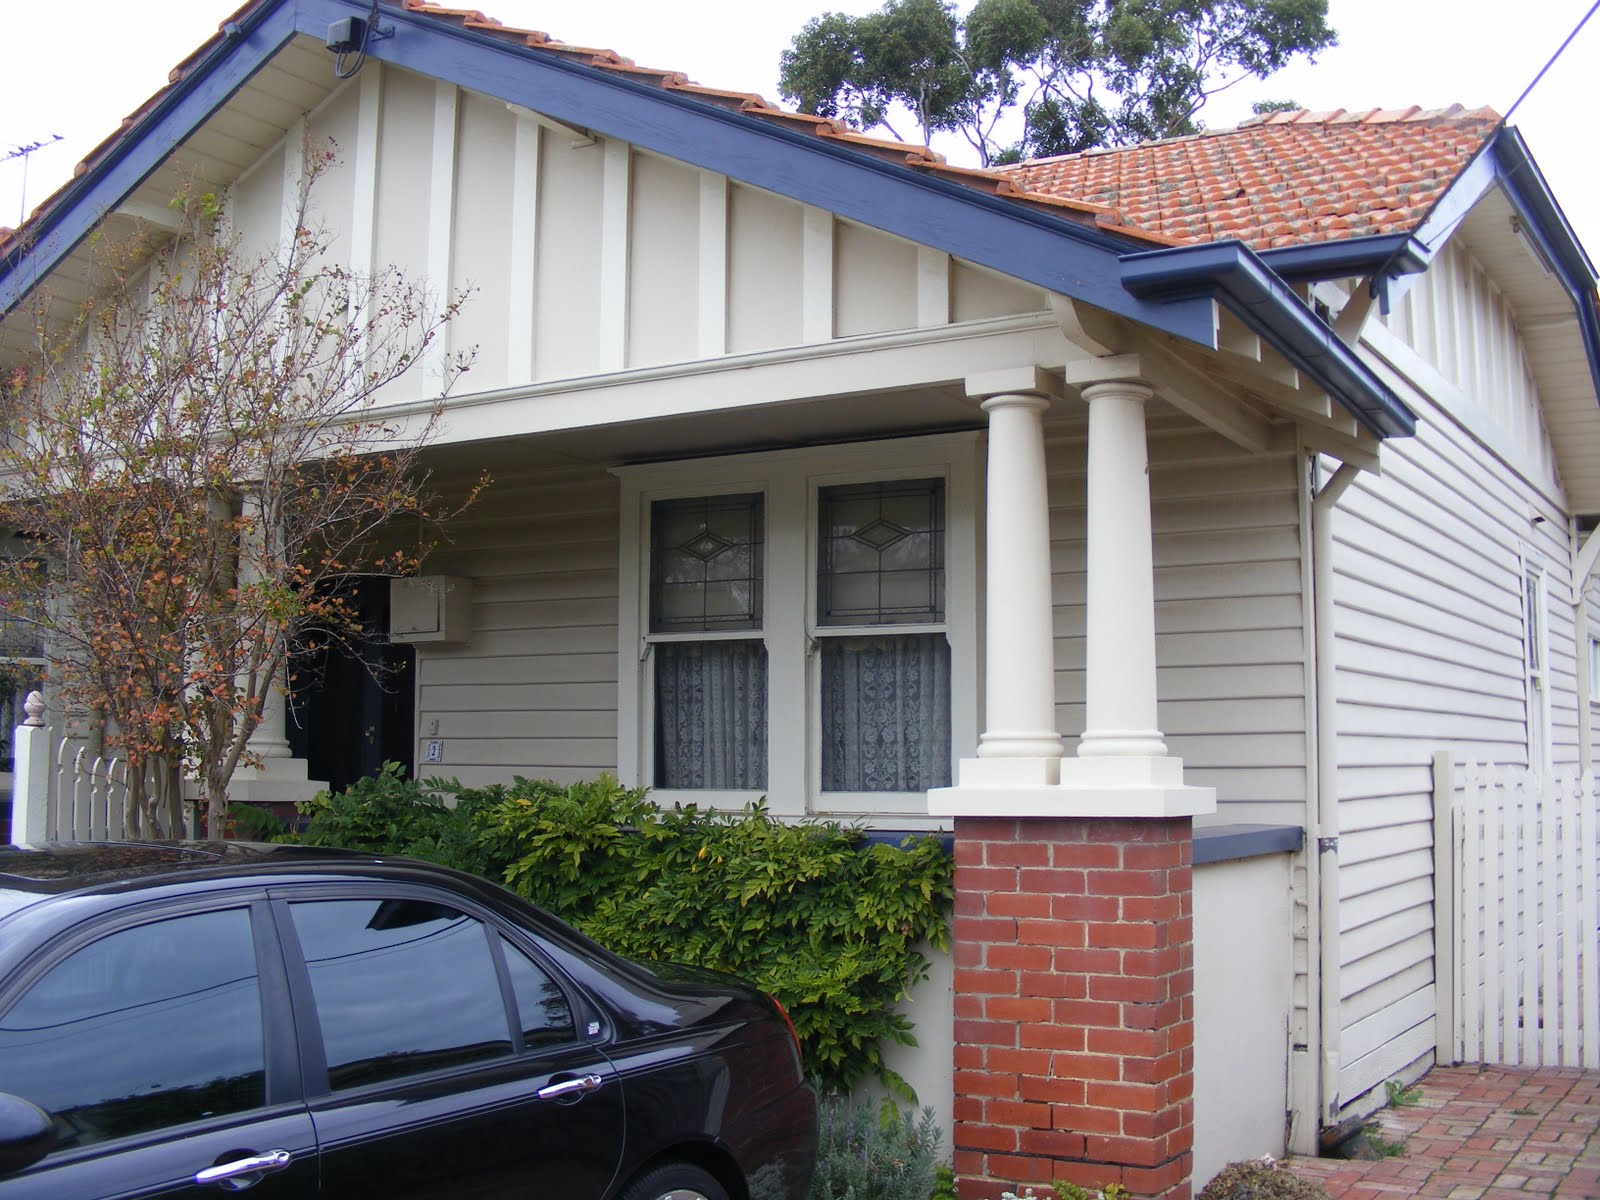 Trentham tales the state bank californian bungalow and for California bungalow house